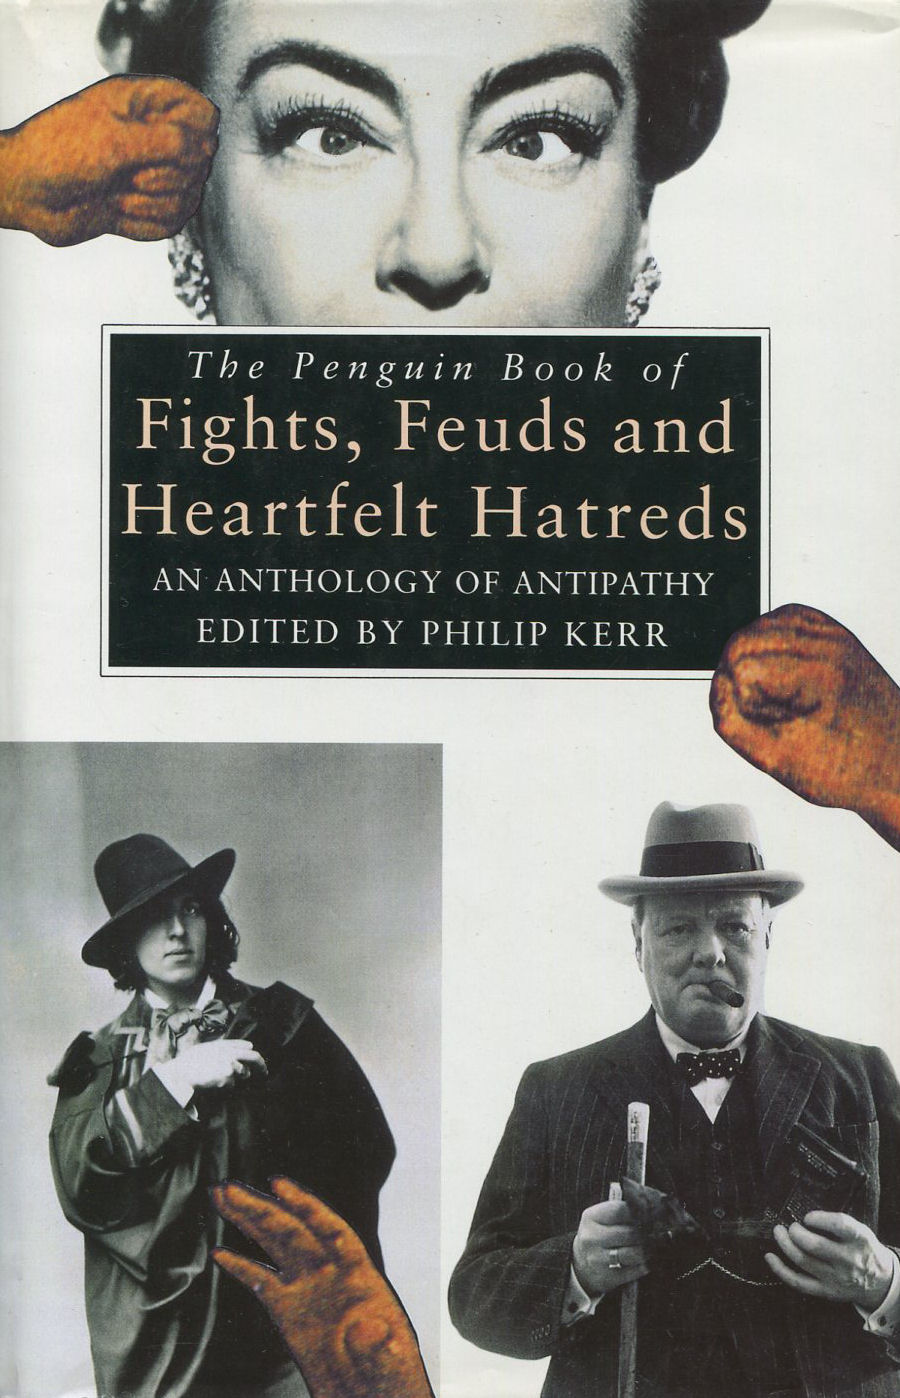 Image for The Penguin Book of Fights, Feuds and Heartfelt Hatreds: An Anthology of Antipathy